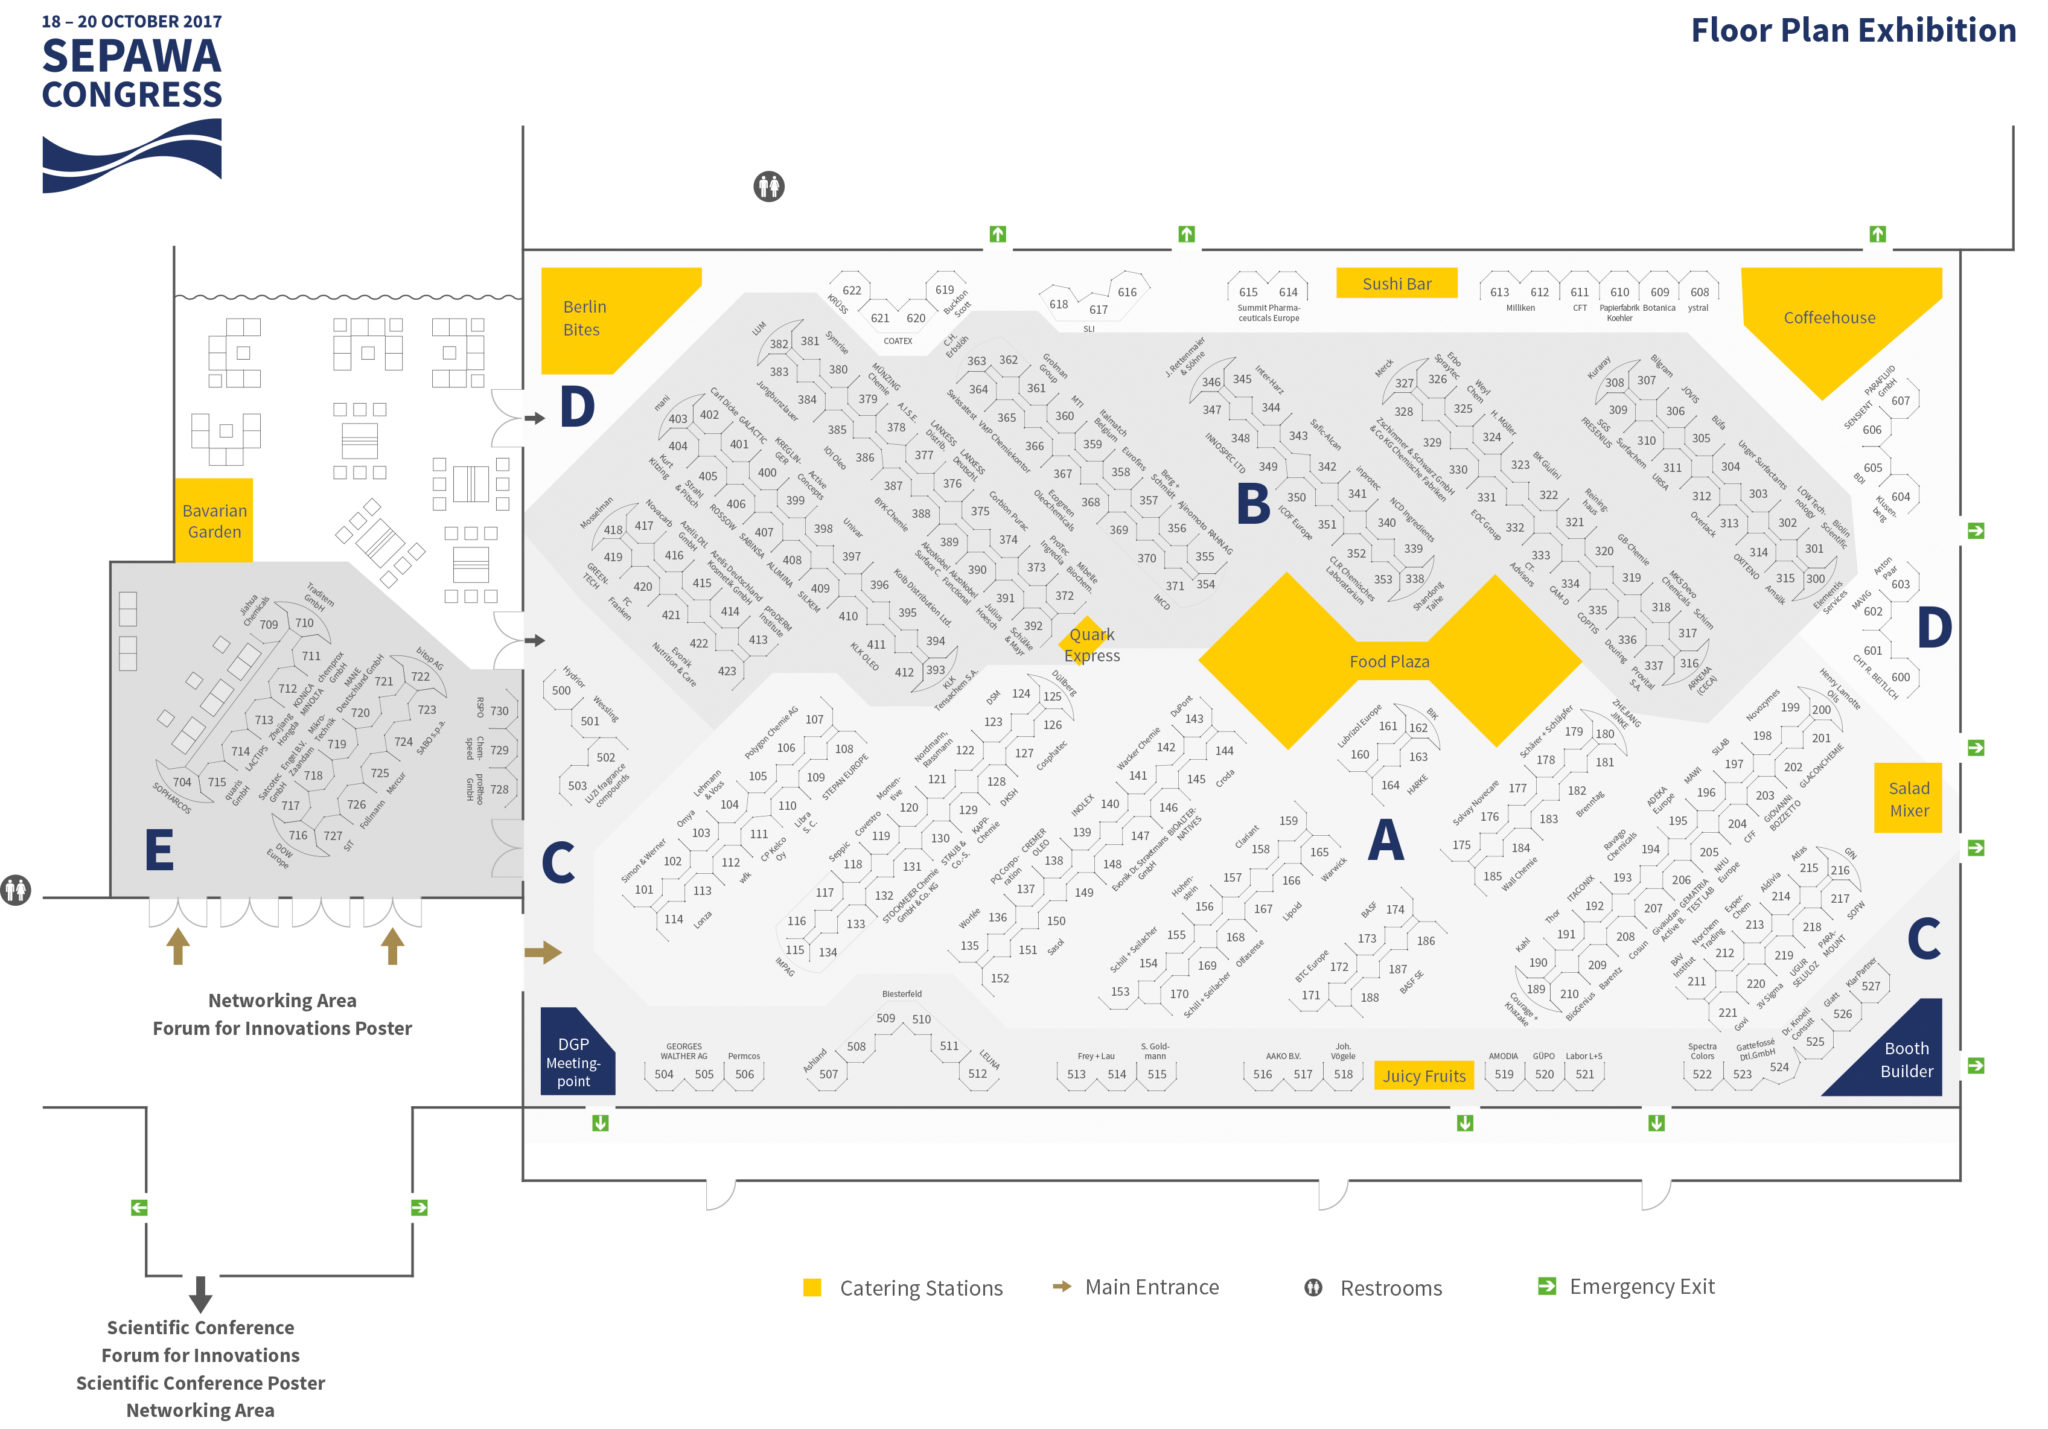 FloorPlan_Exhibition.indd